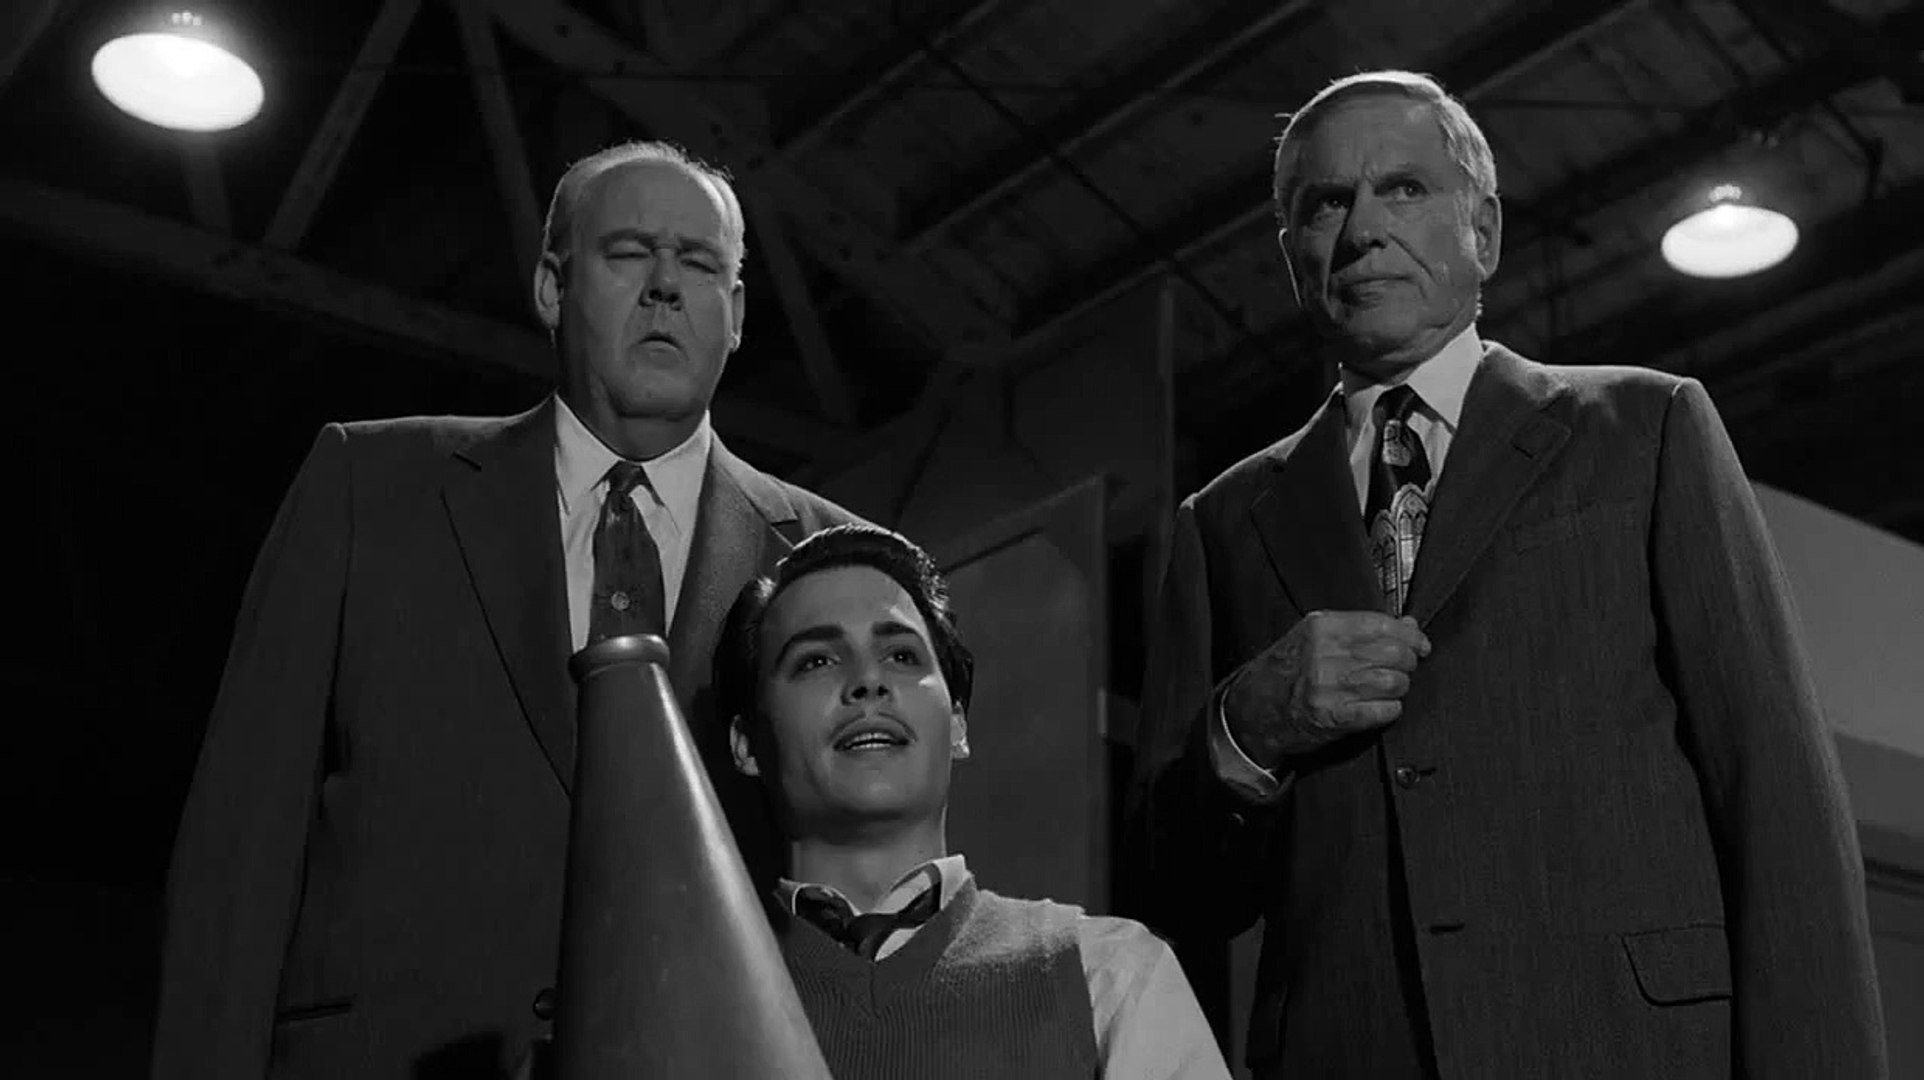 Ed Wood [1994] scene -- Edward D. Wood Shoots 'Plan 9 from Outer Space' in a Phony Graveya